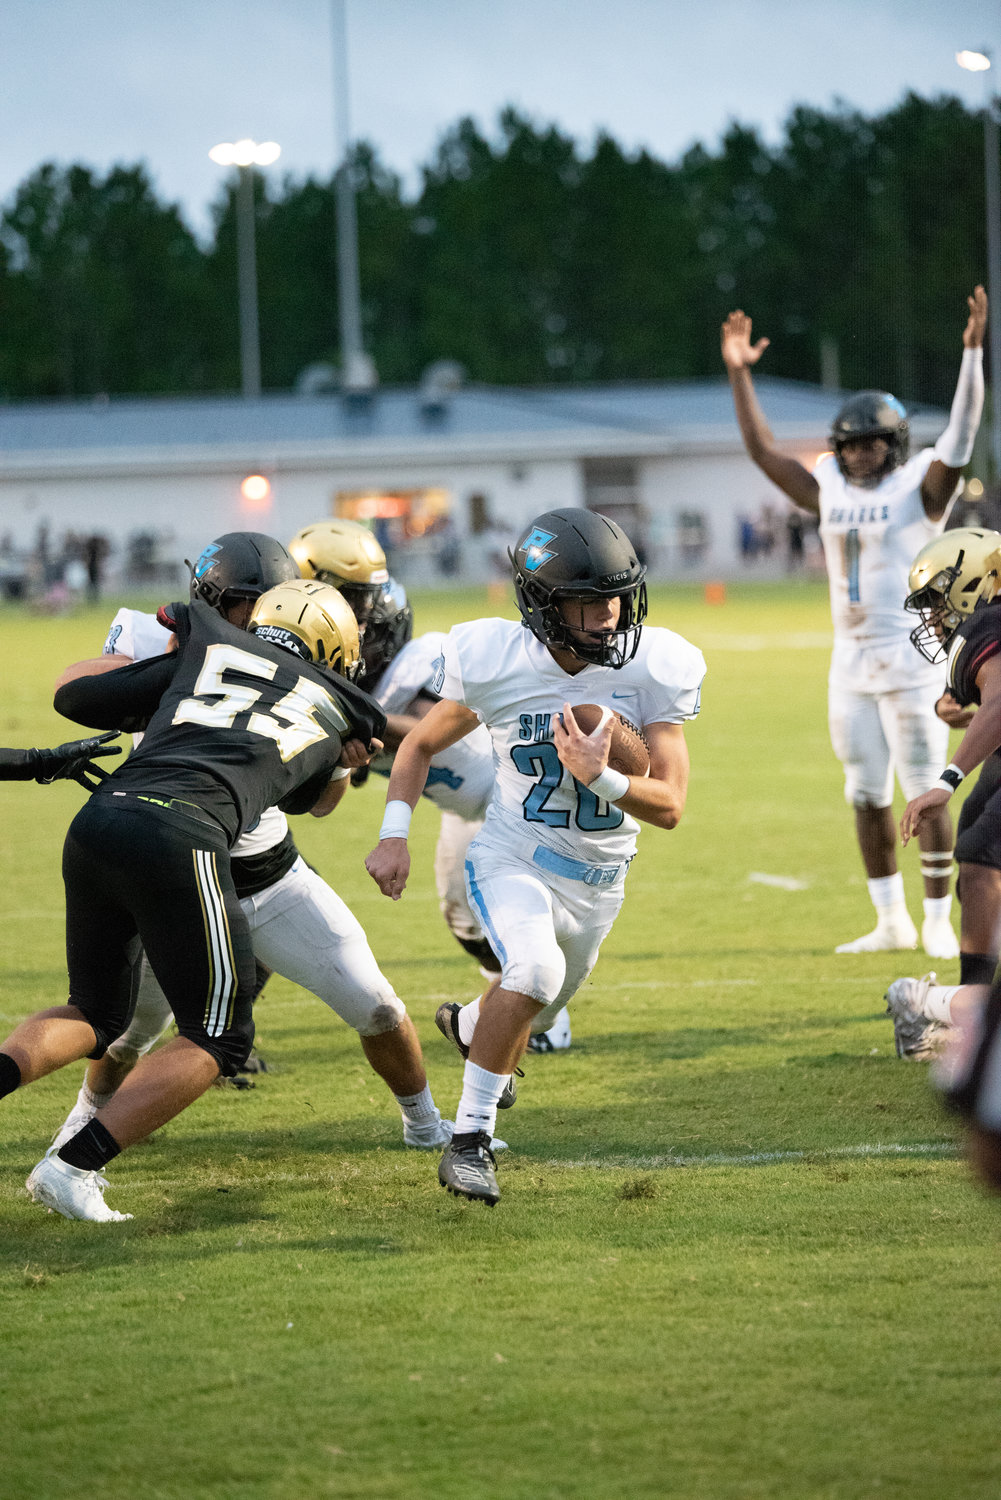 A Sharks defender tackles an Oakleaf player during the preseason scrimmage.